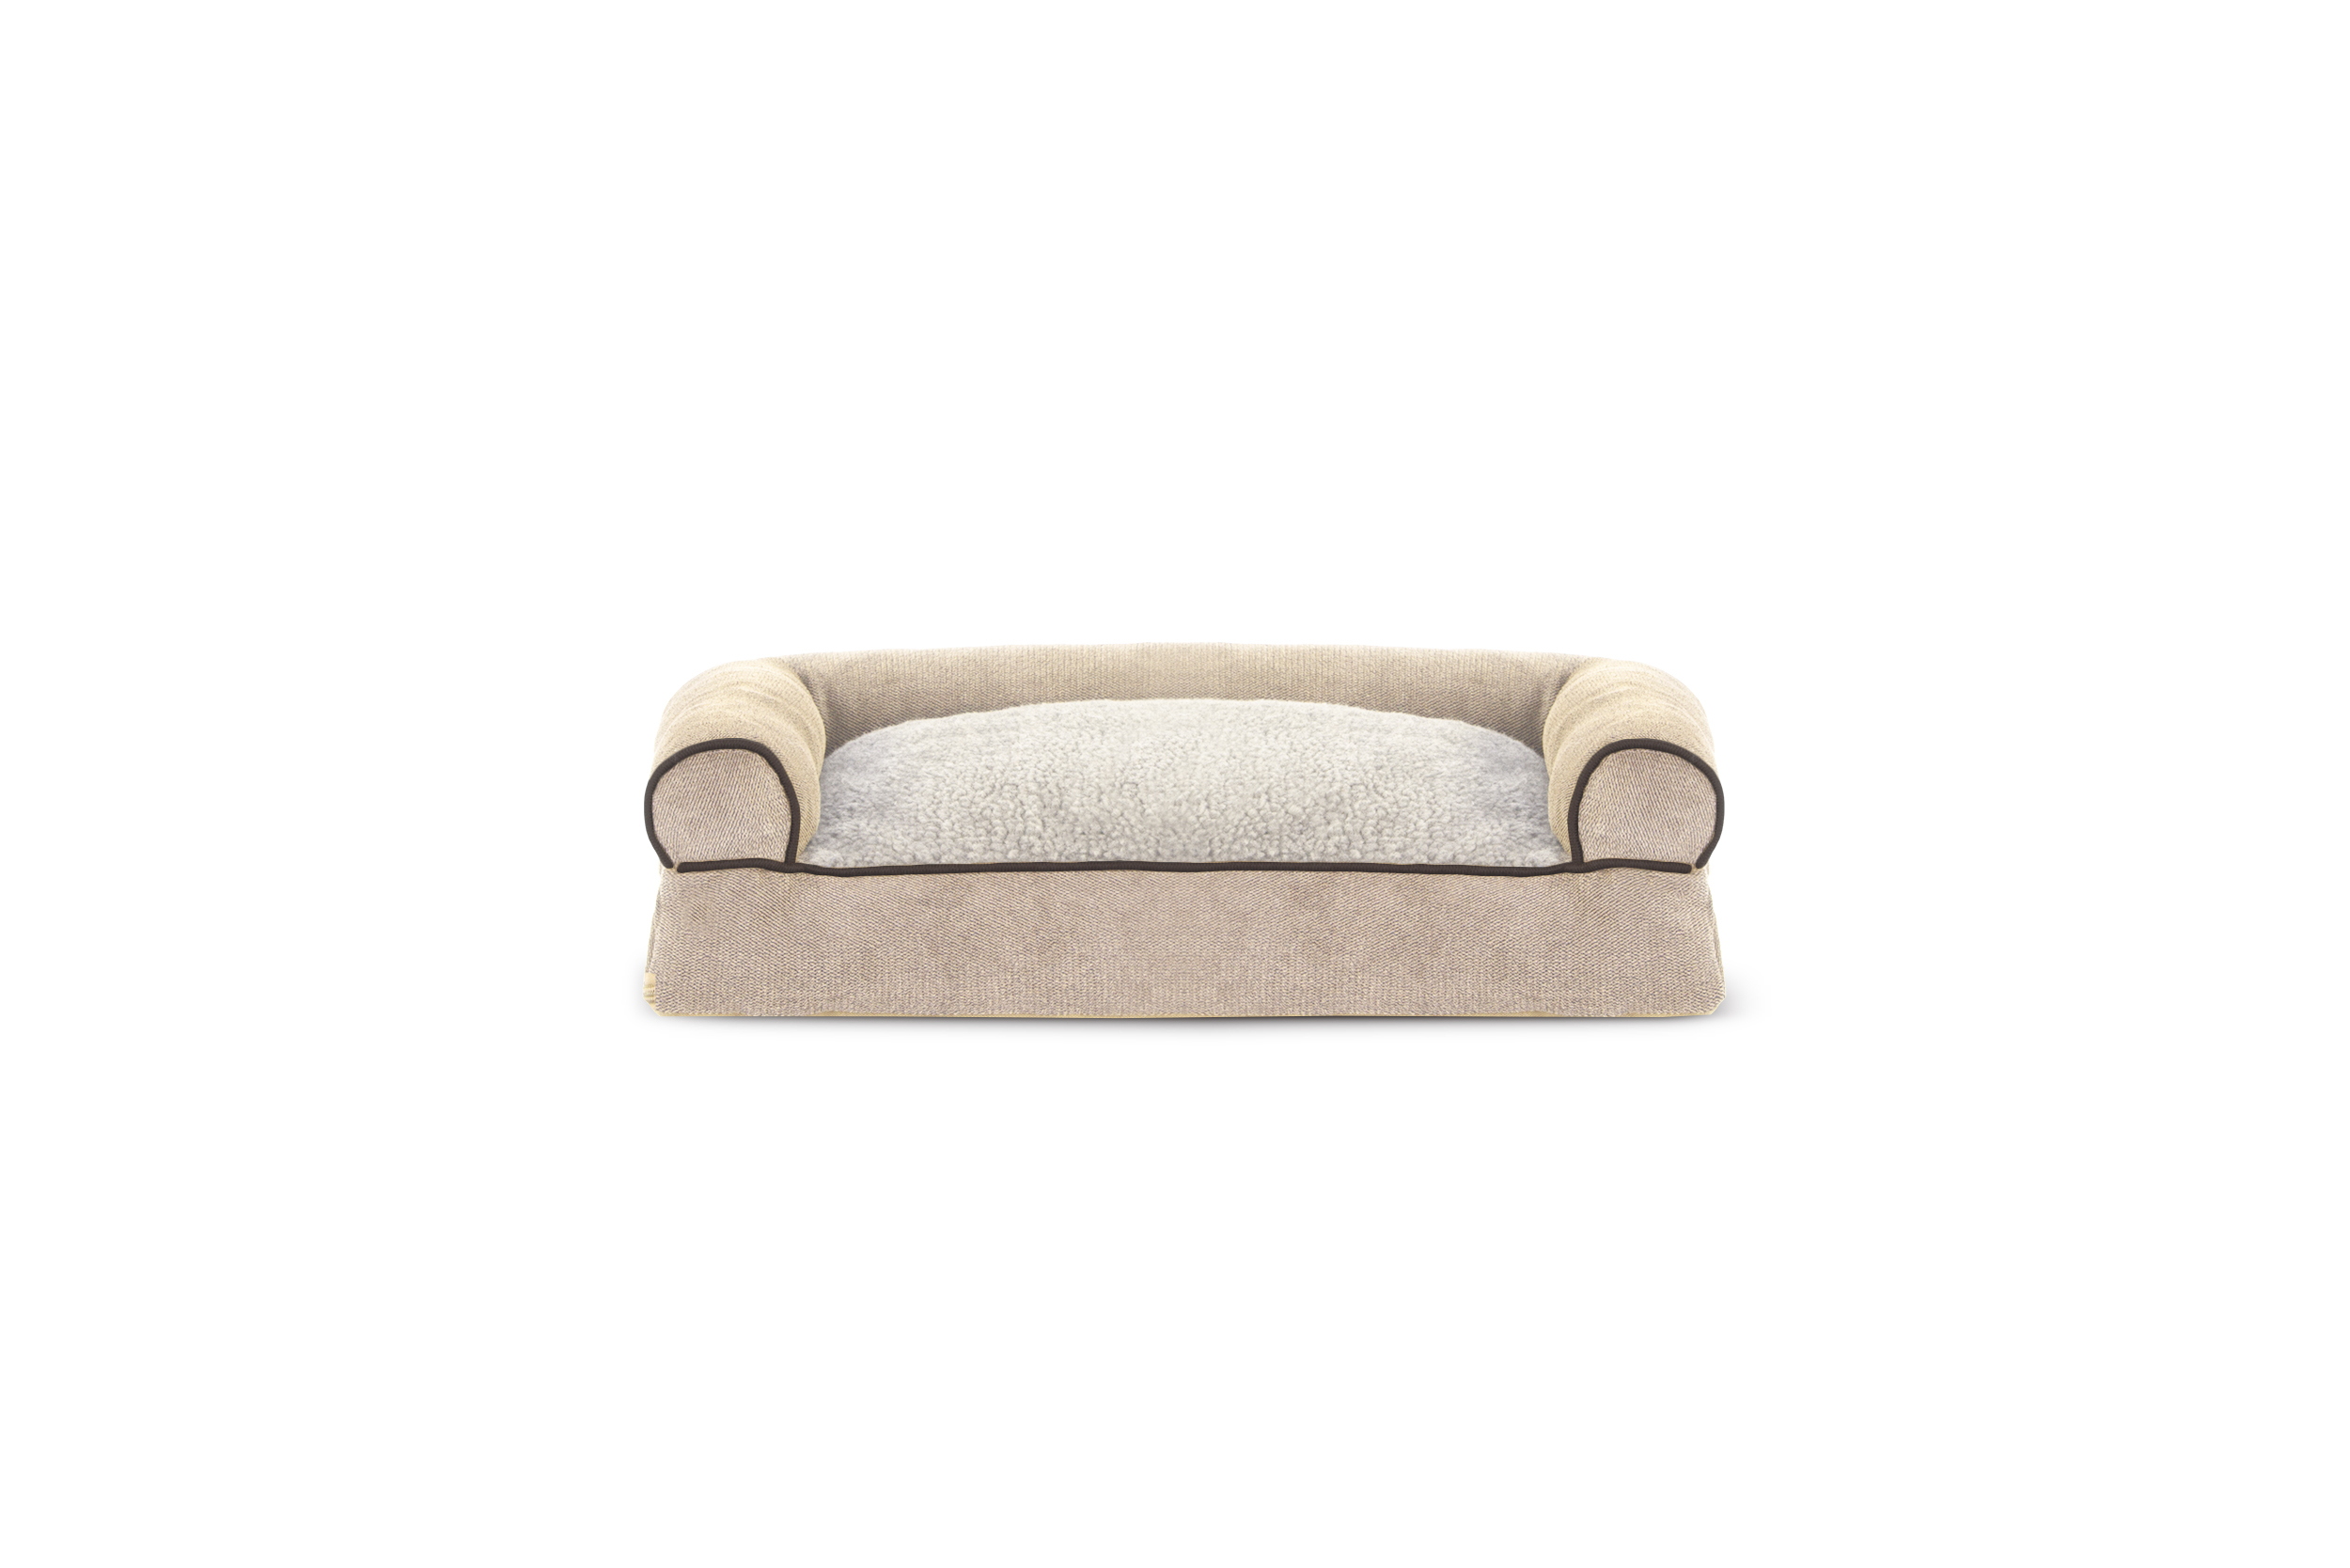 soft sofa dog bed dark brown leather with grey walls faux fleece and chenille woven pillow pet